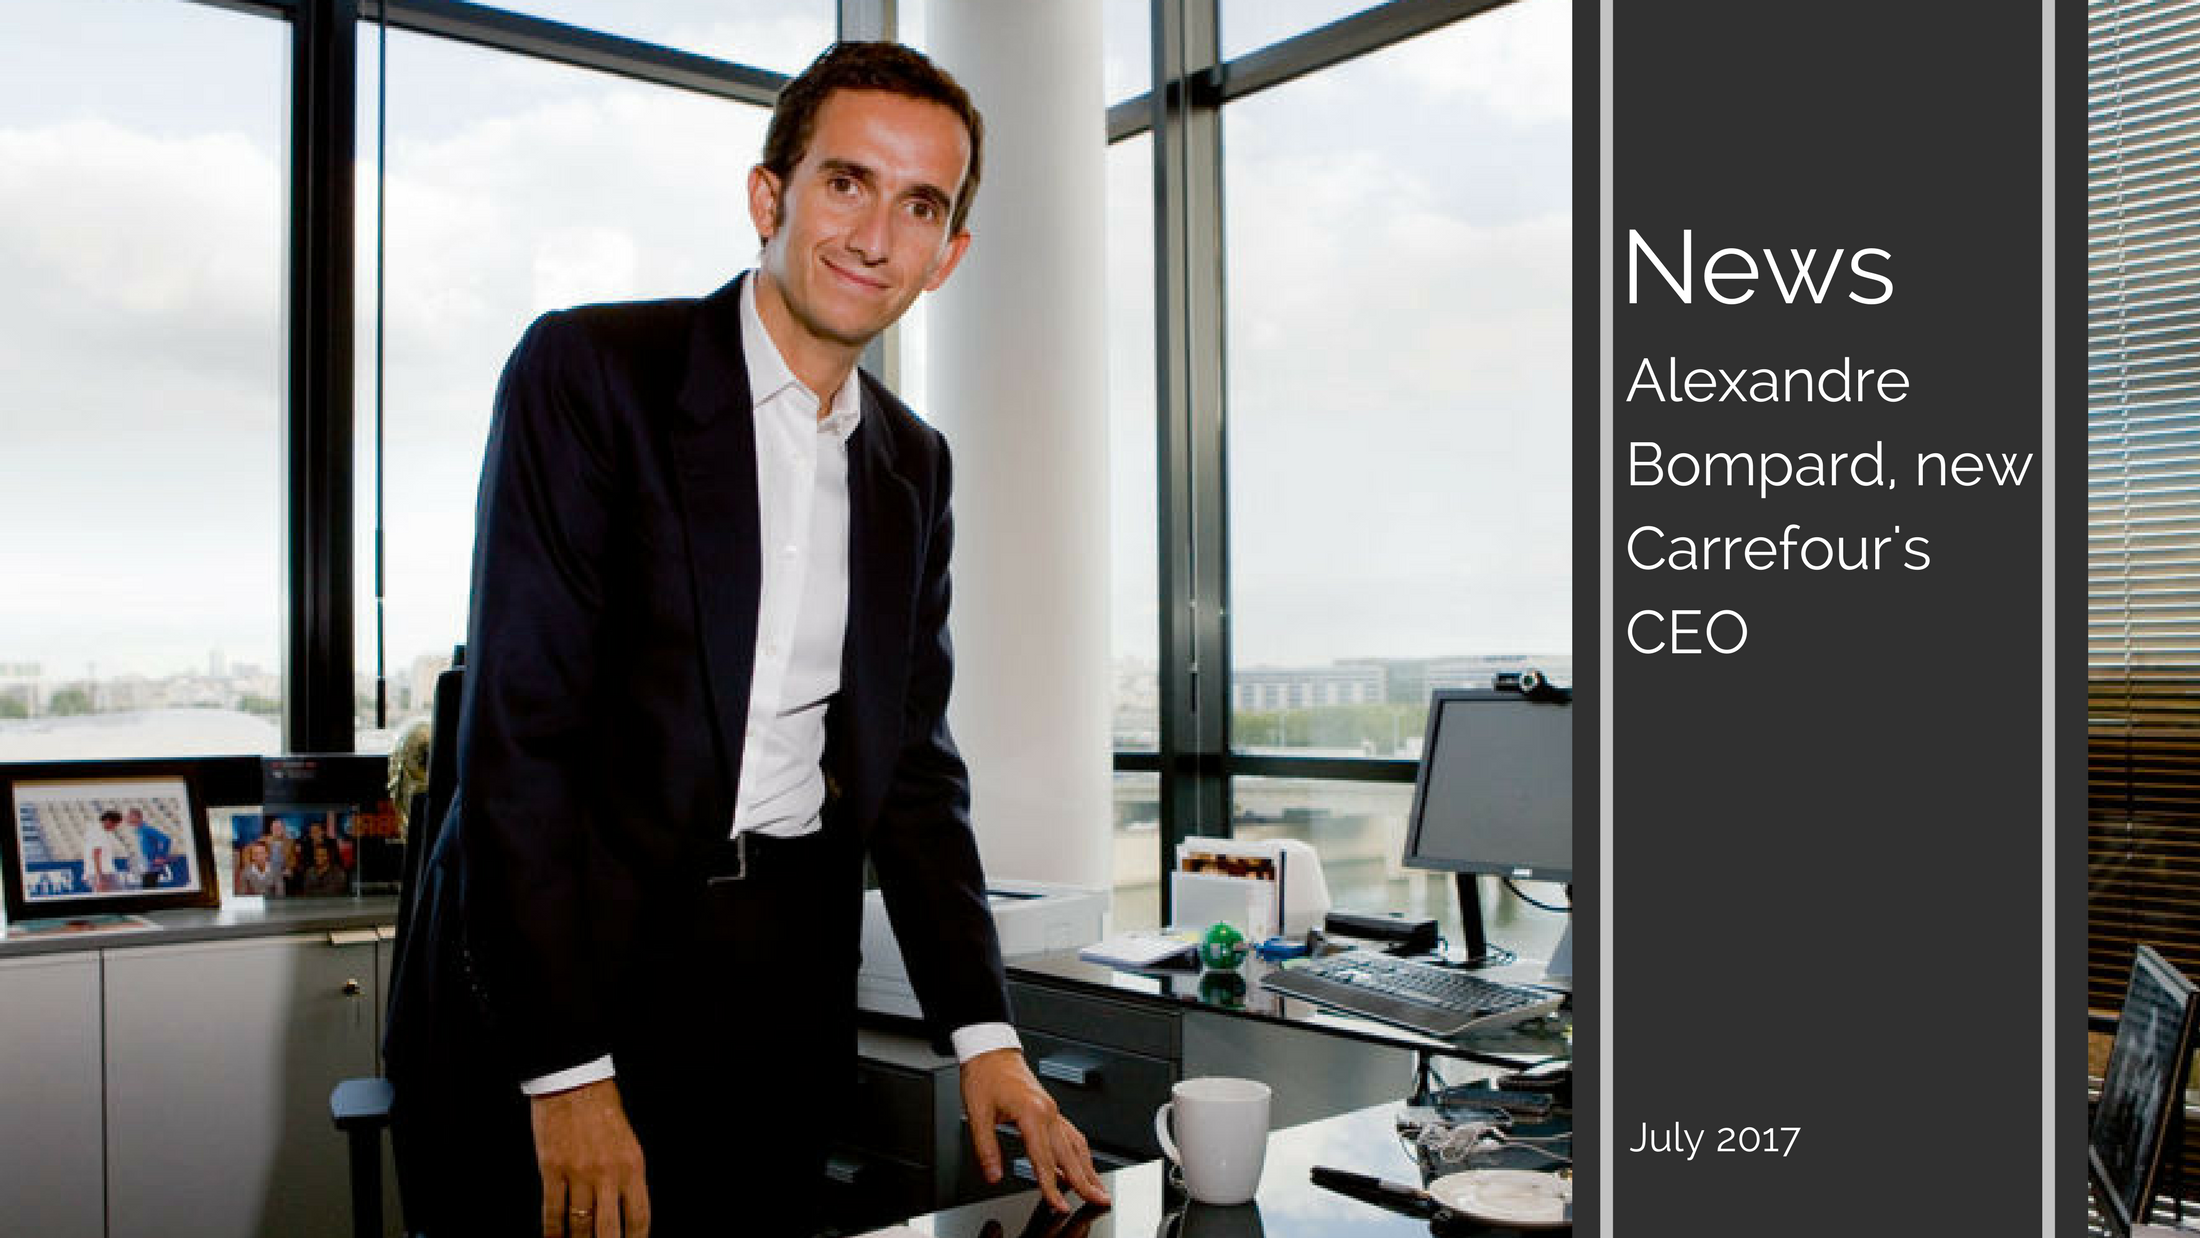 2 1 - Alexandre Bompard, new Carrefour's CEO